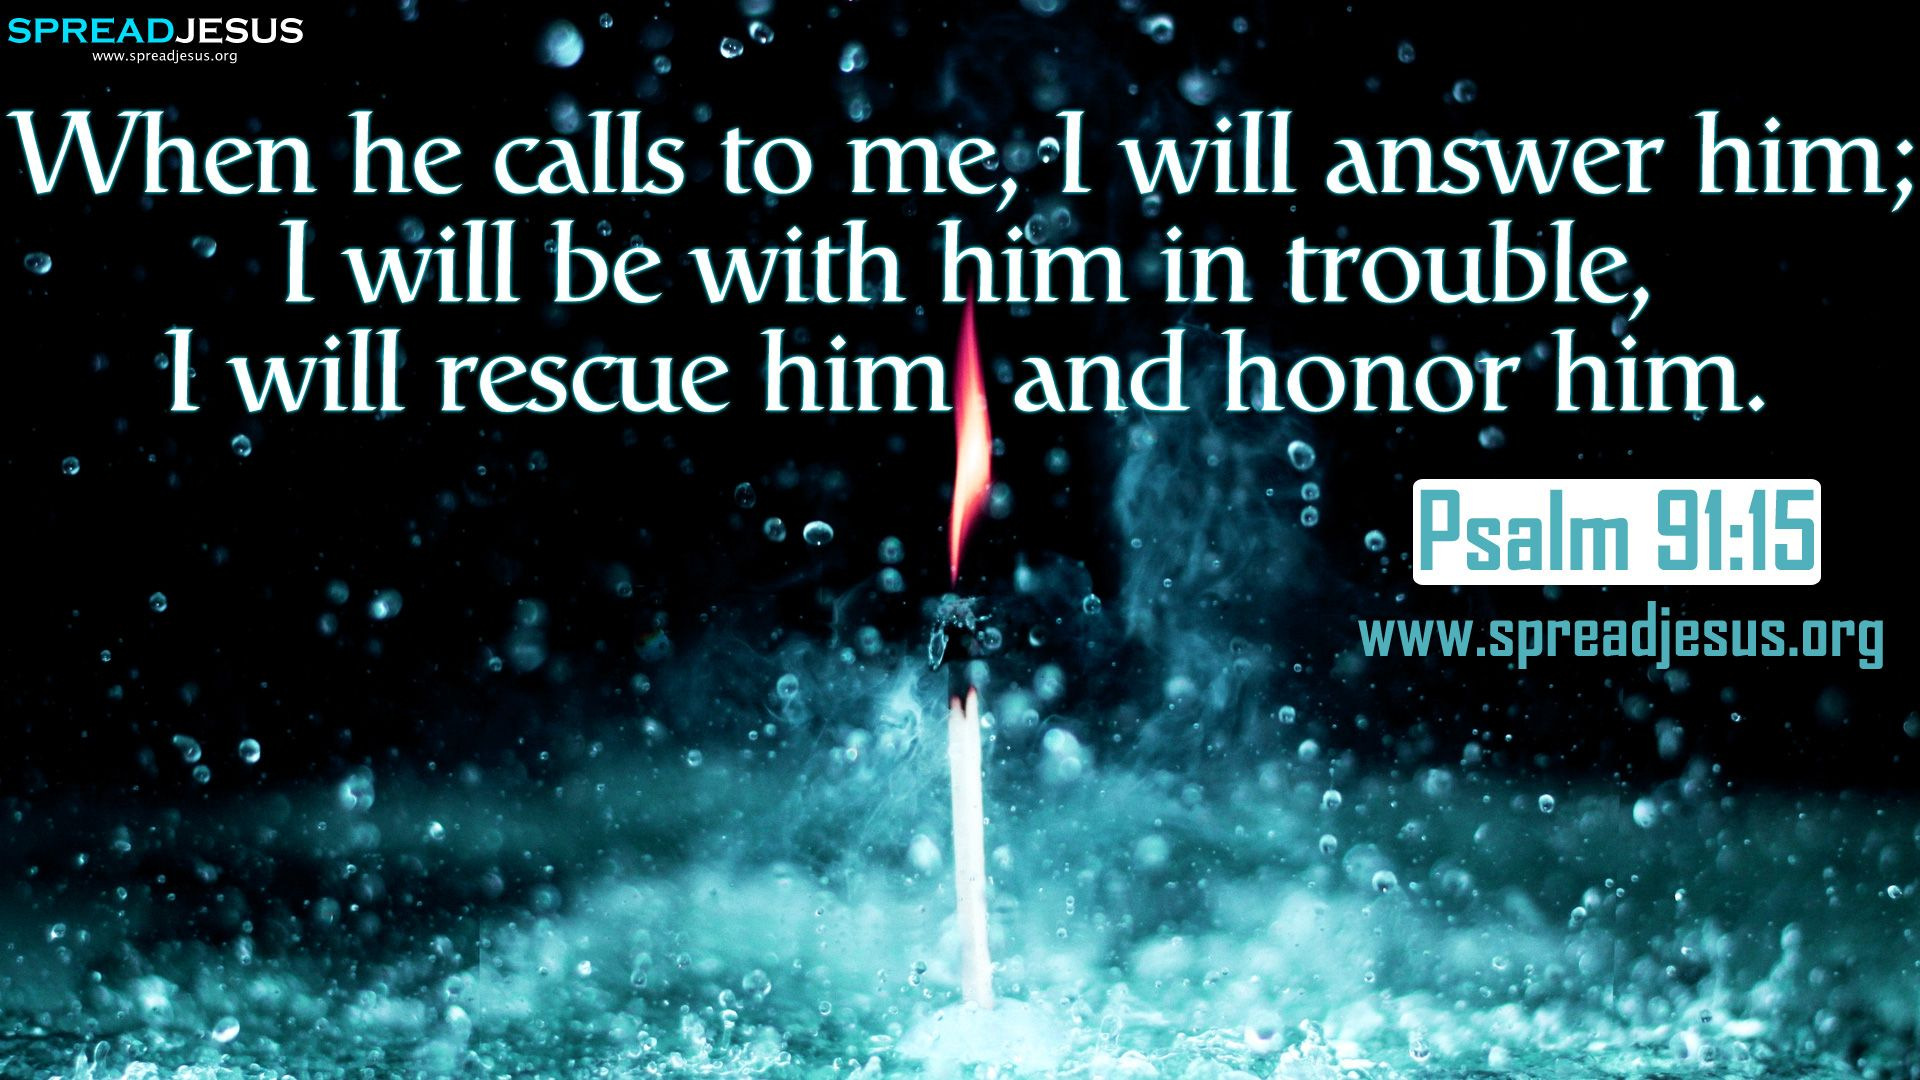 psalm 91 wallpaper christian bible u2013 free wallpaper download